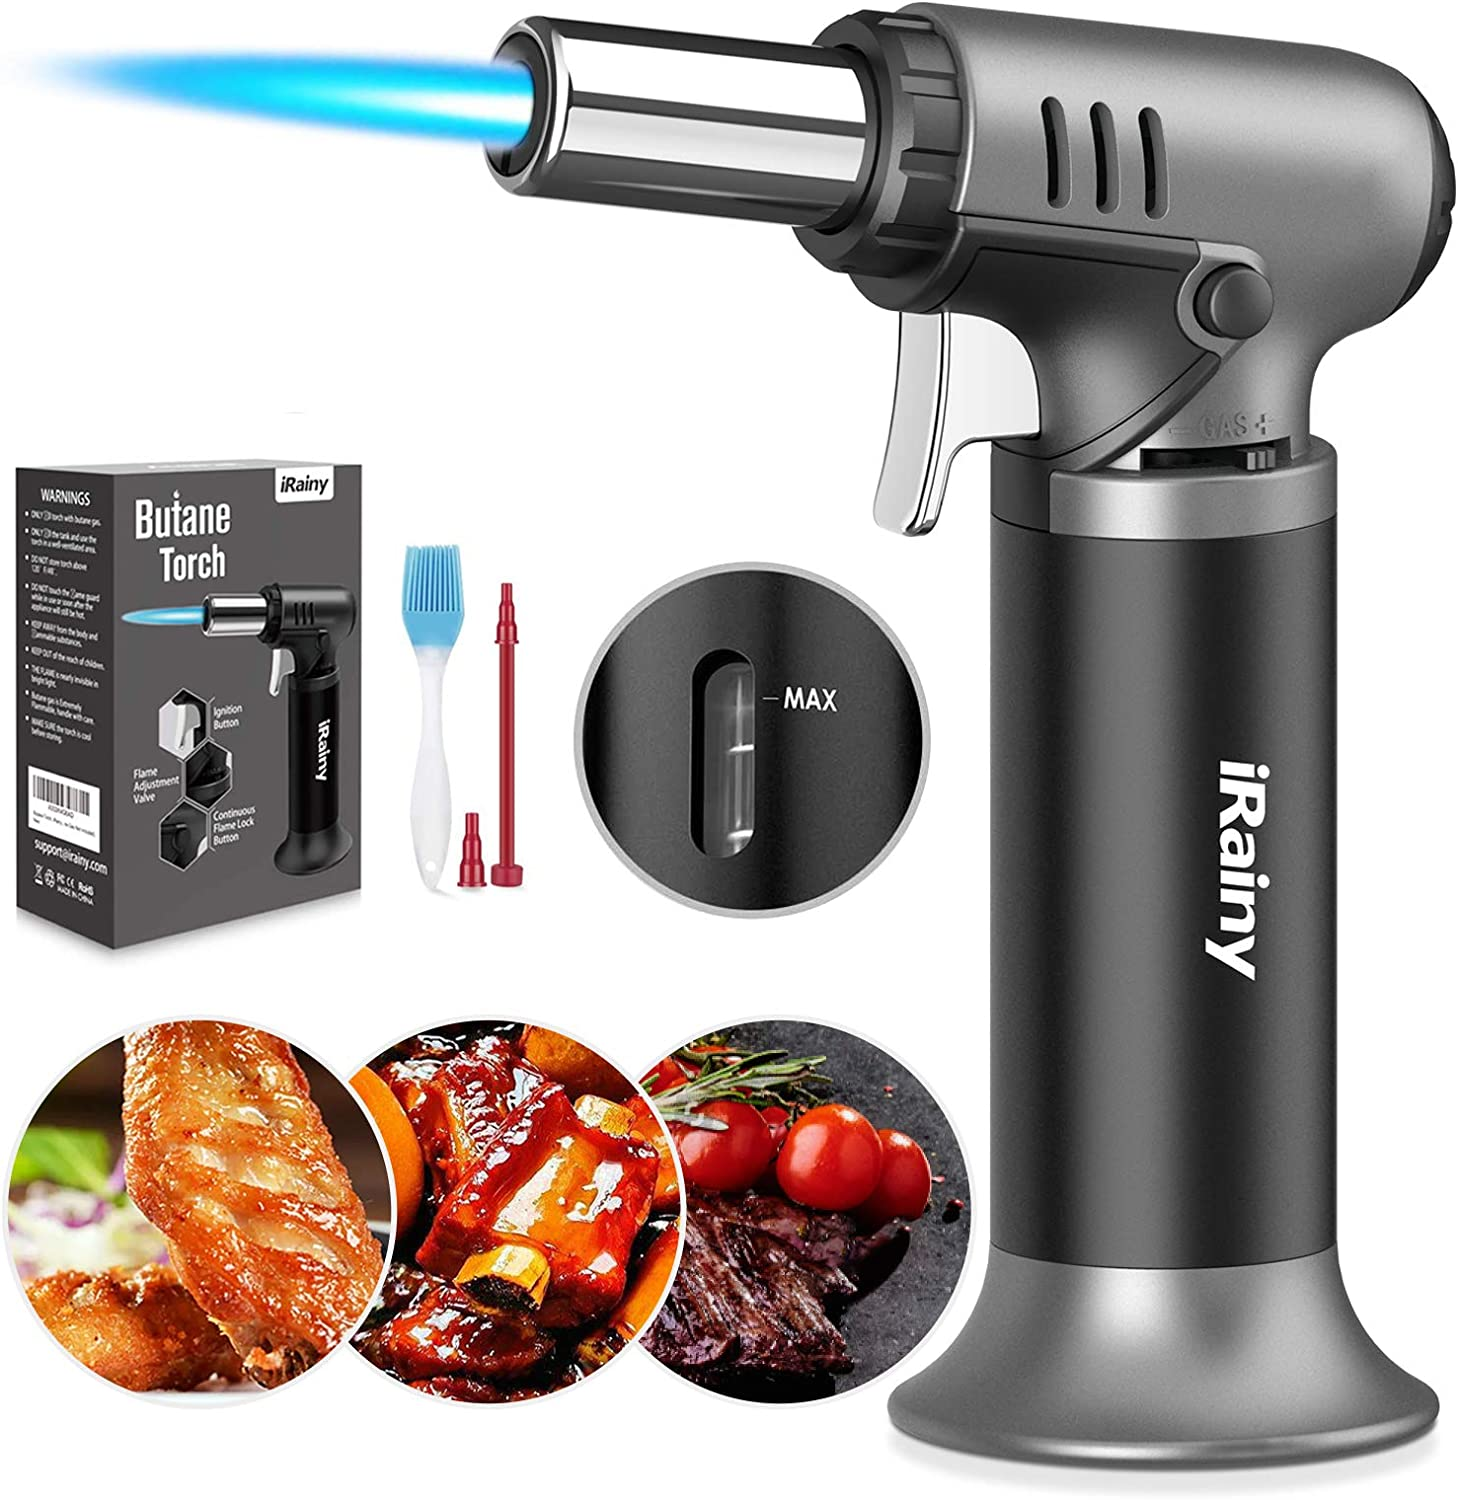 iRainy Butane Torch, Kitchen Blow Torch Refillable Cooking Torch Lighter with Fuel Gauge, Culinary Torch with Continuous Flame Lock & Adjustable Flame for Desserts, BBQ (Butane Gas Not Included)